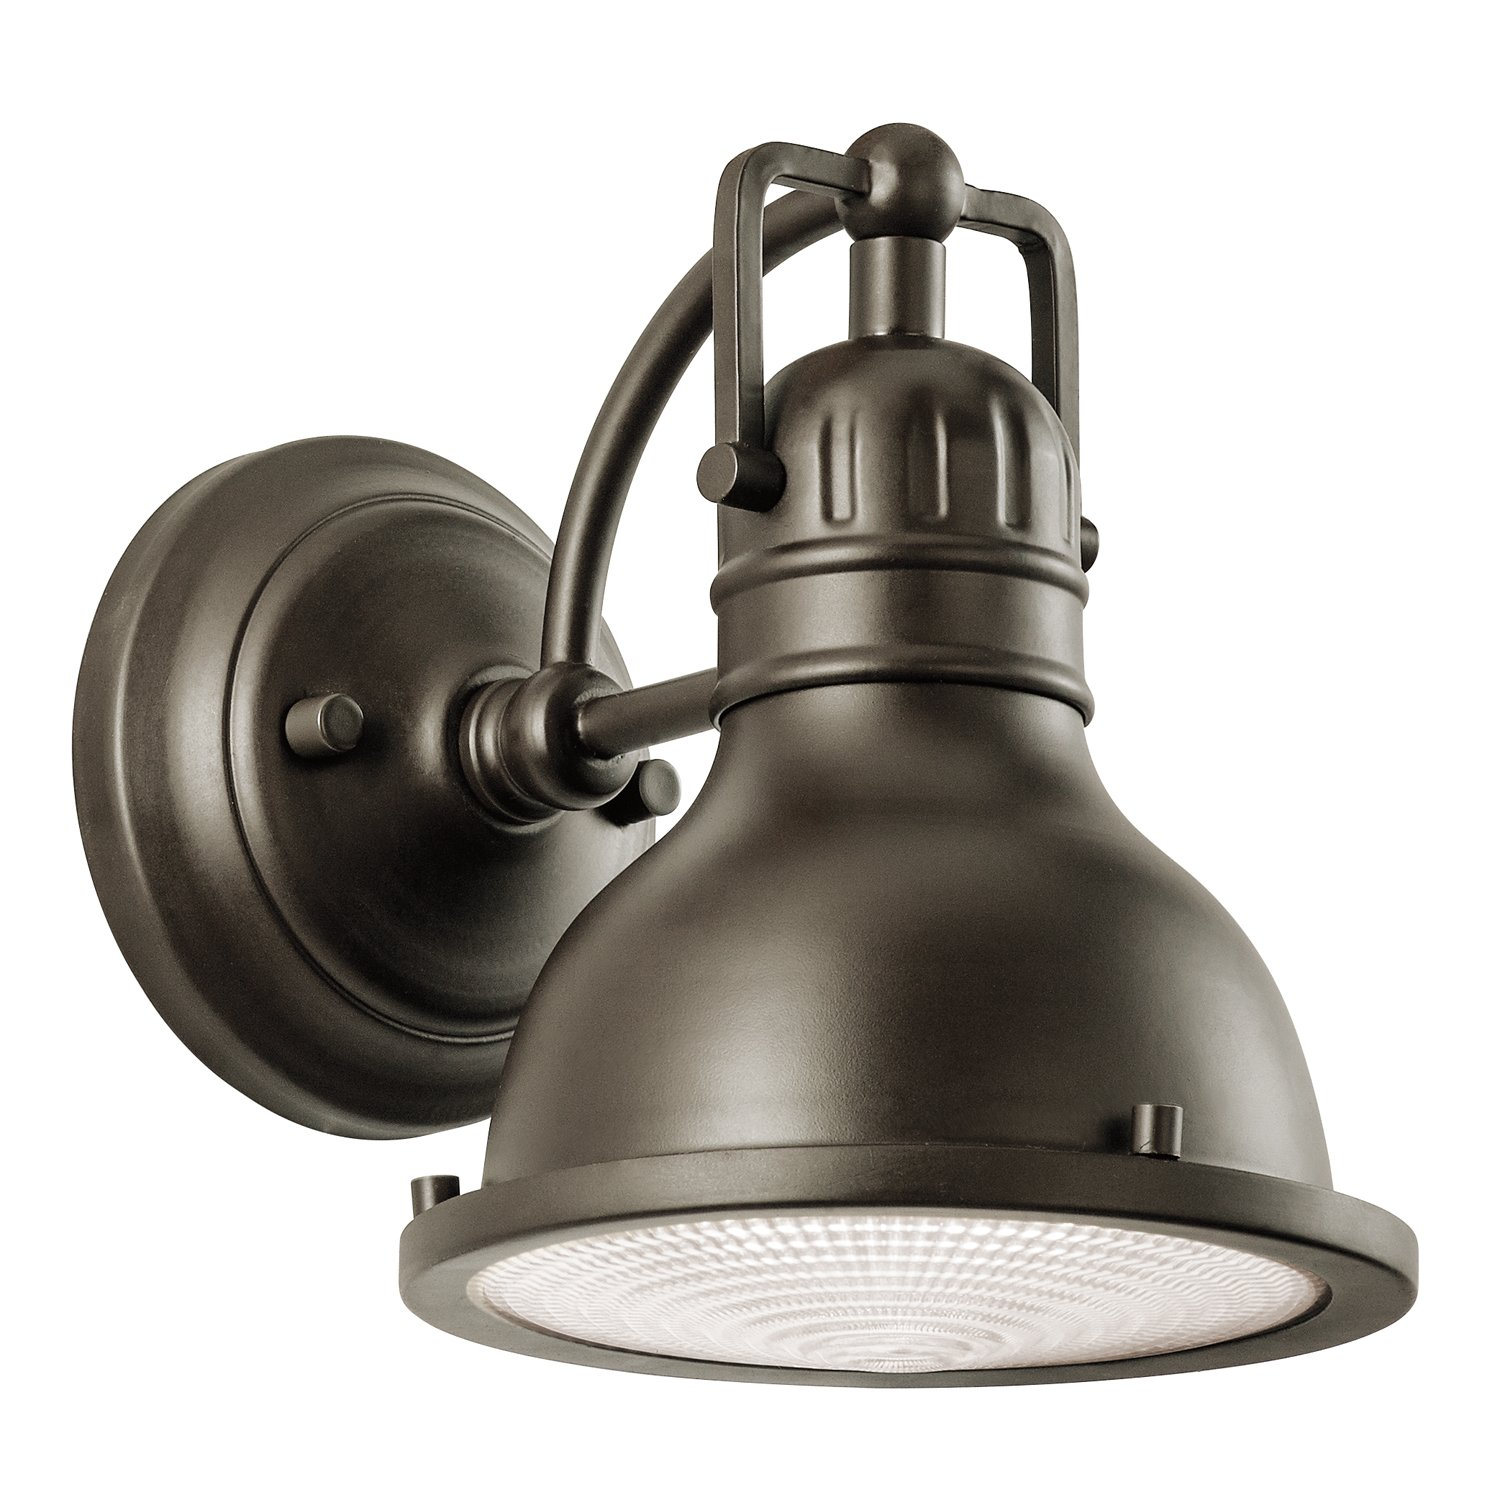 Kichler 49064oz outdoor wall 1 light olde bronze wall porch kichler 49064oz outdoor wall 1 light olde bronze wall porch lights amazon aloadofball Image collections